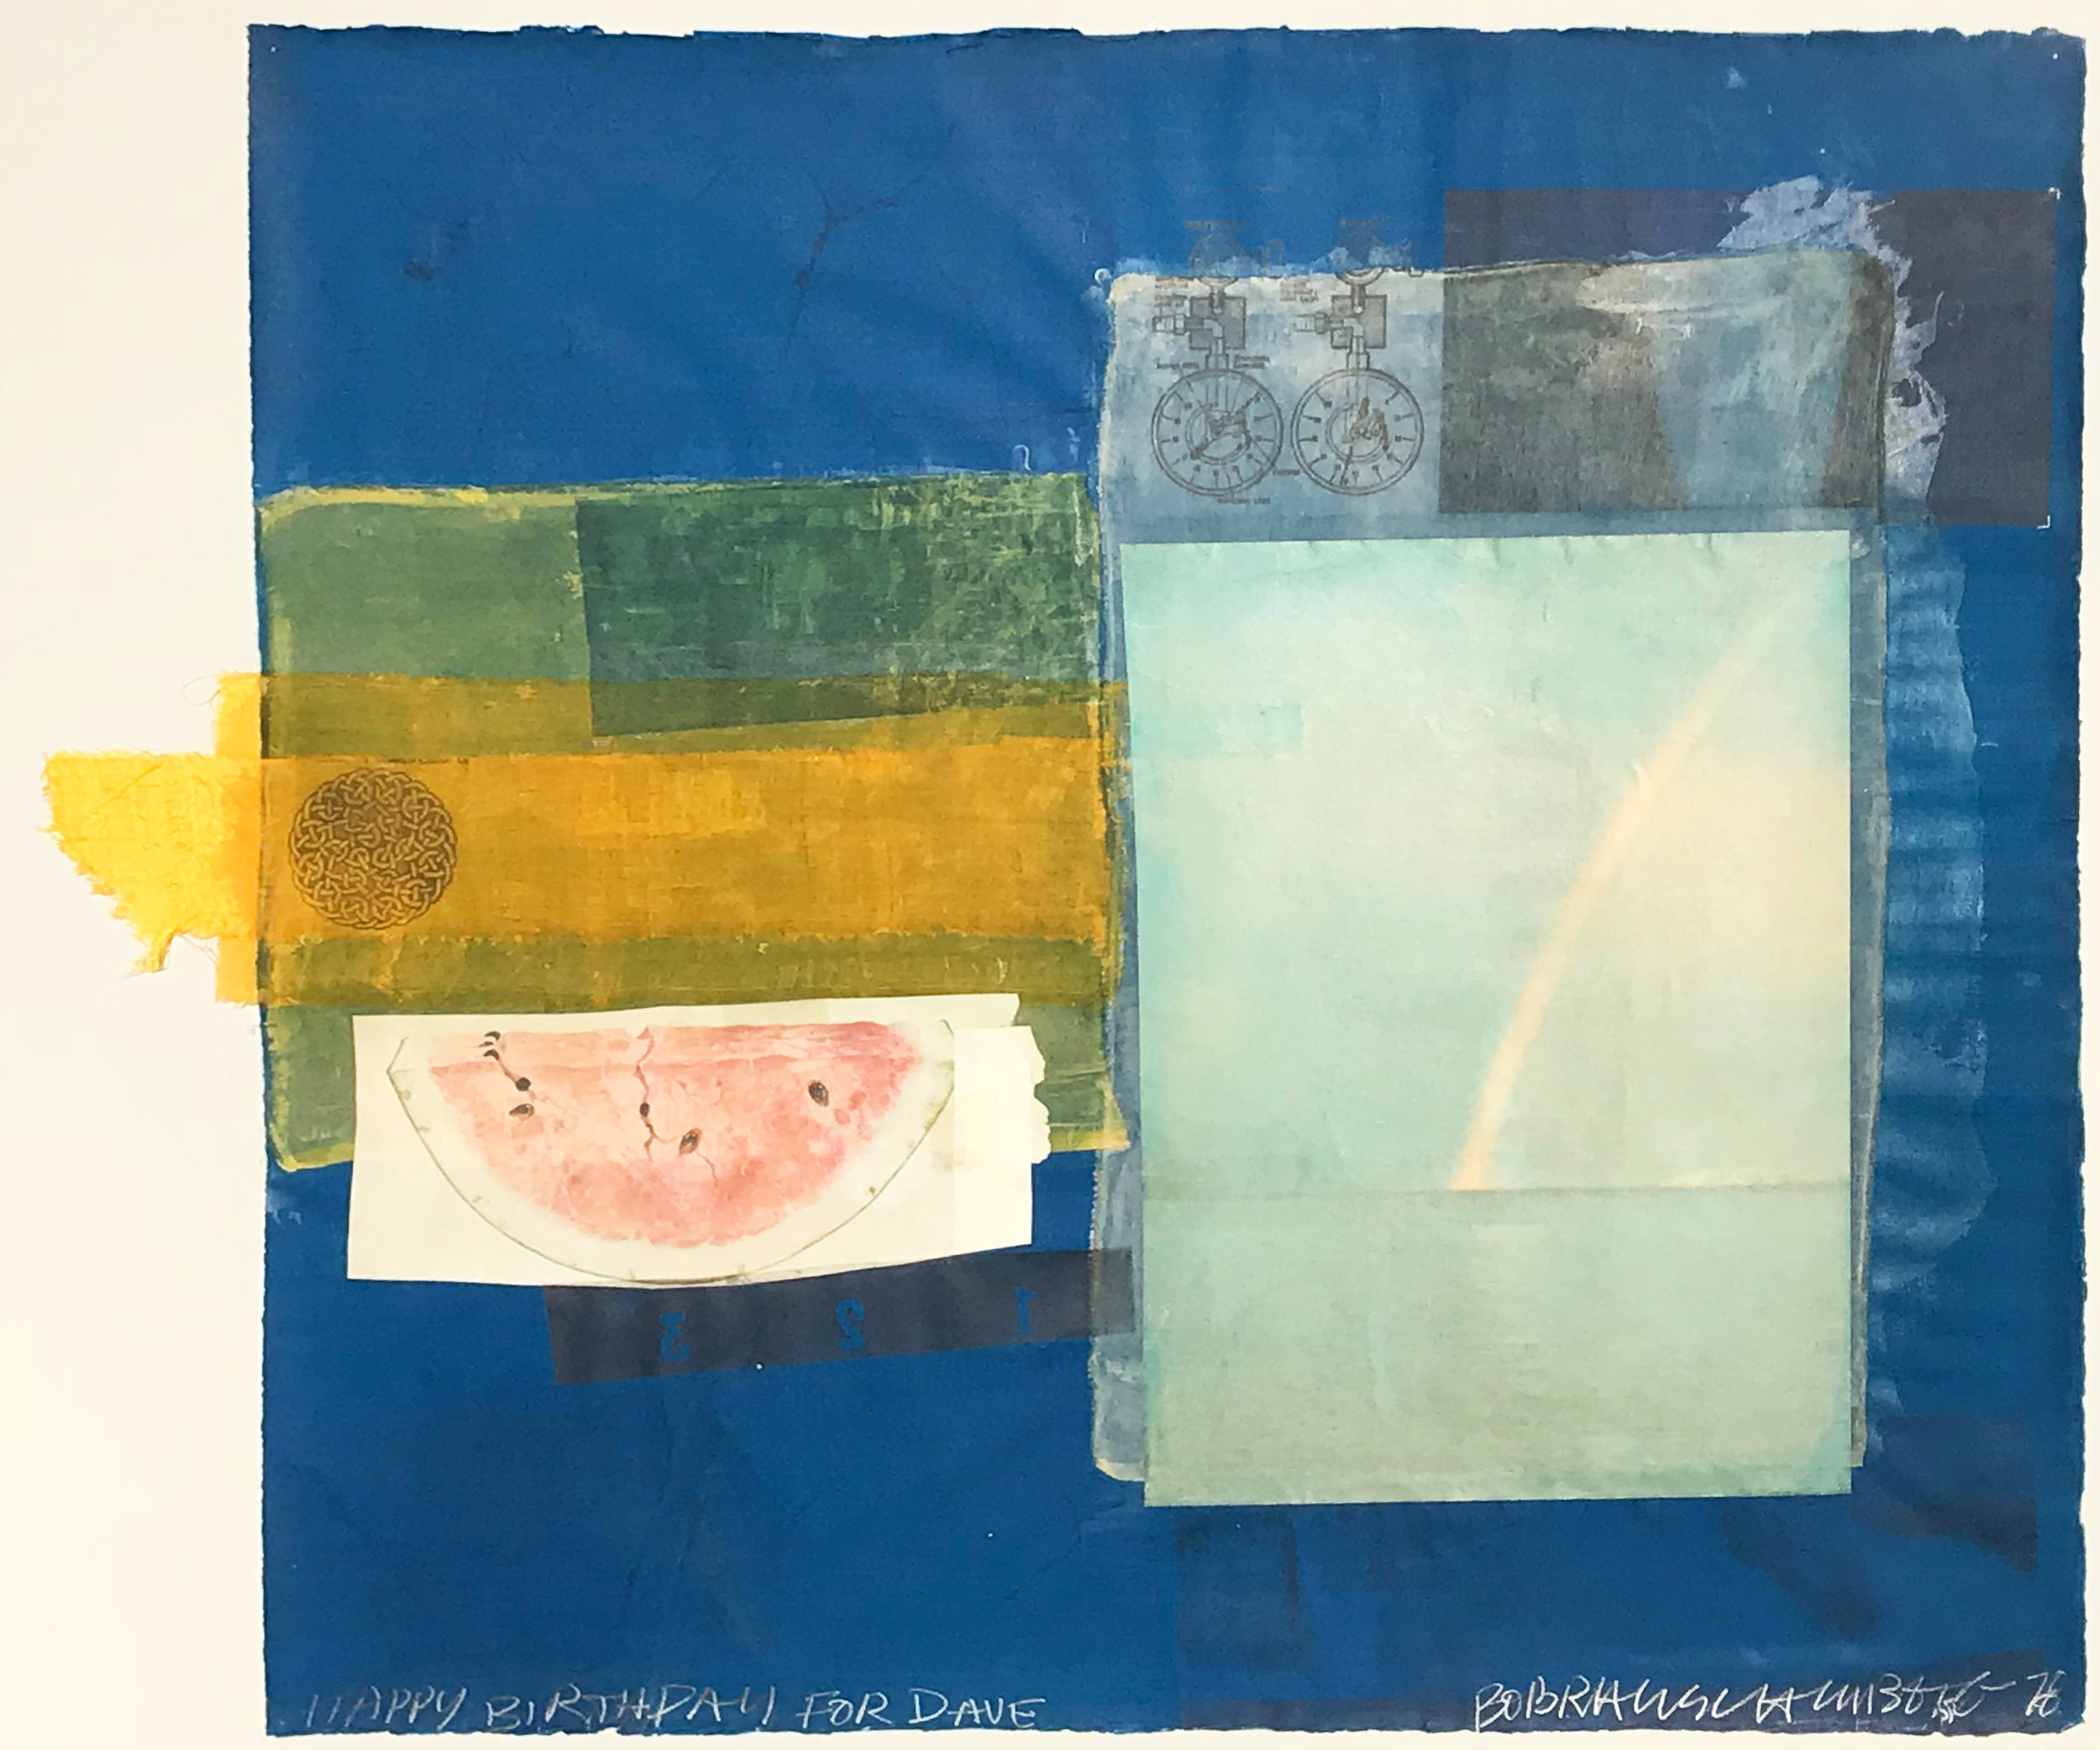 Robert Rauschenberg. Untitled (Happy Birthday For Dave), 1978